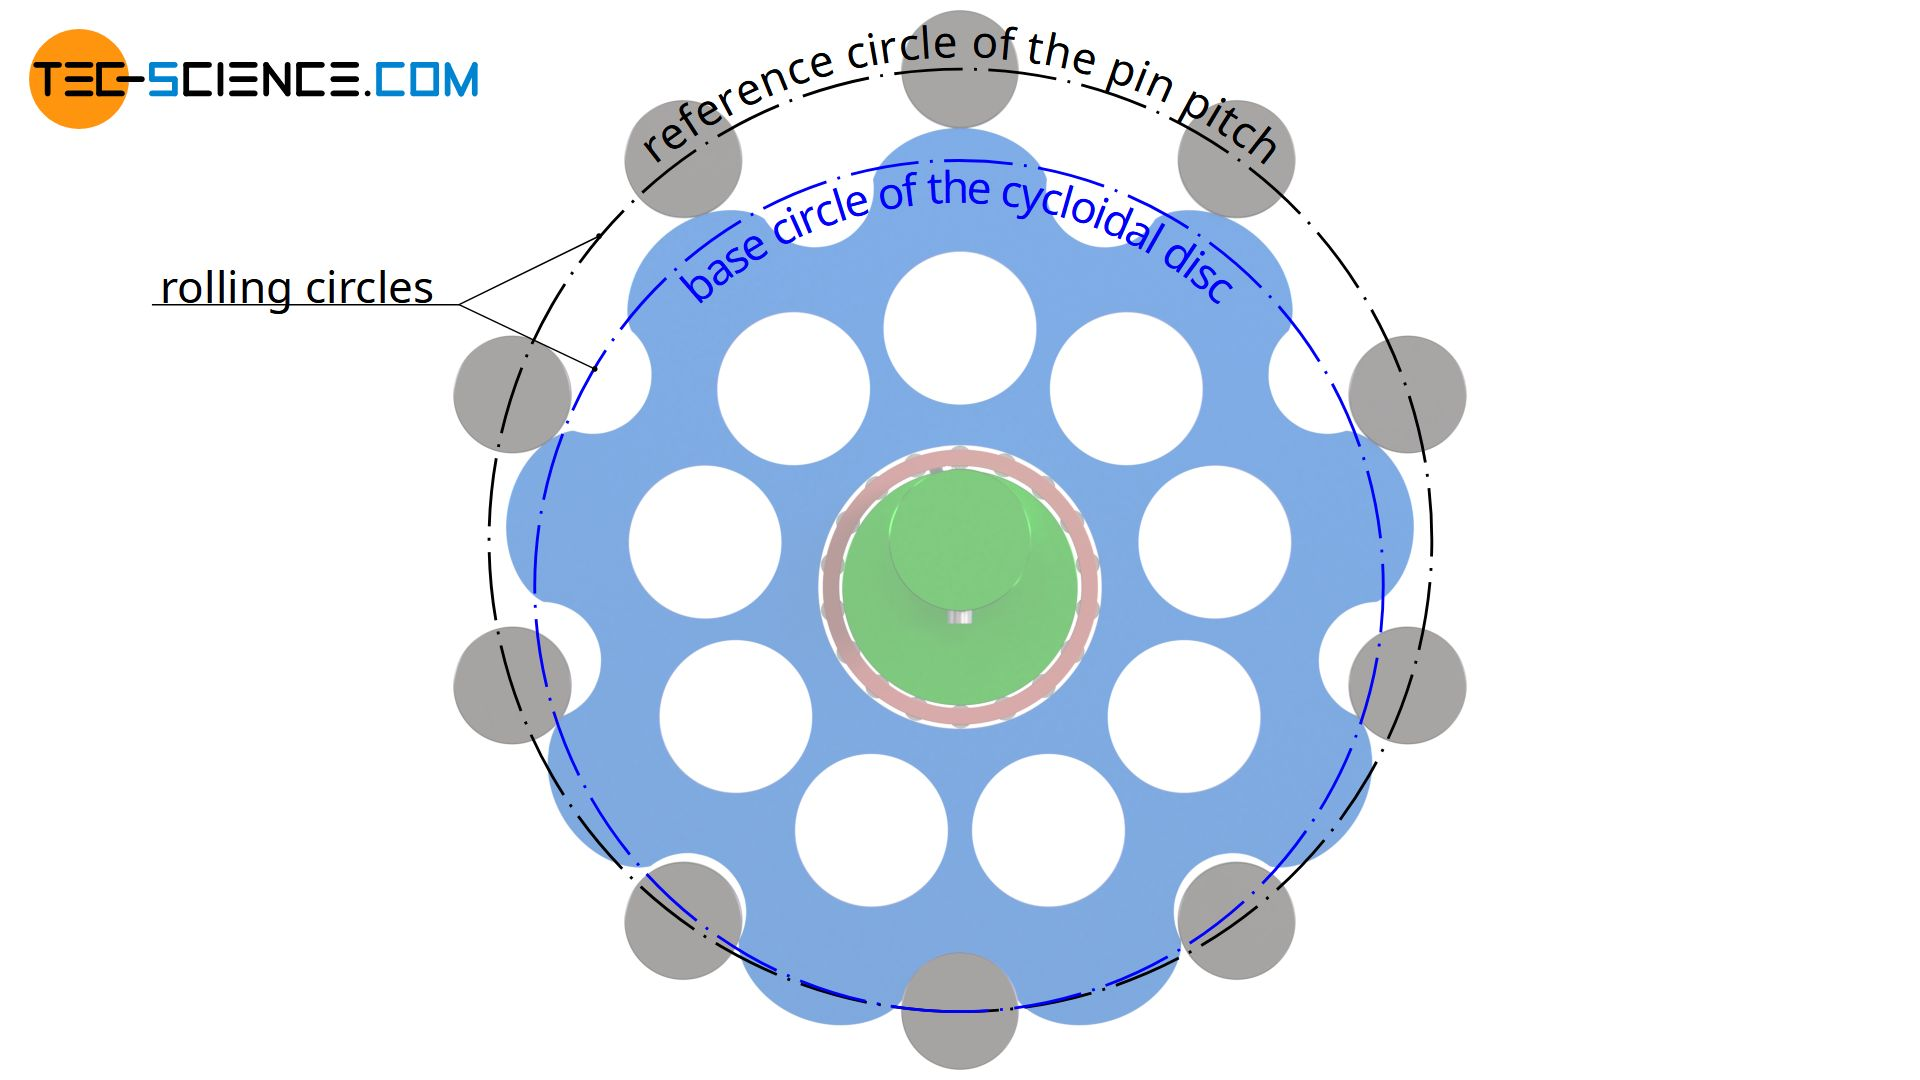 Rolling circles of the cycloidal drive